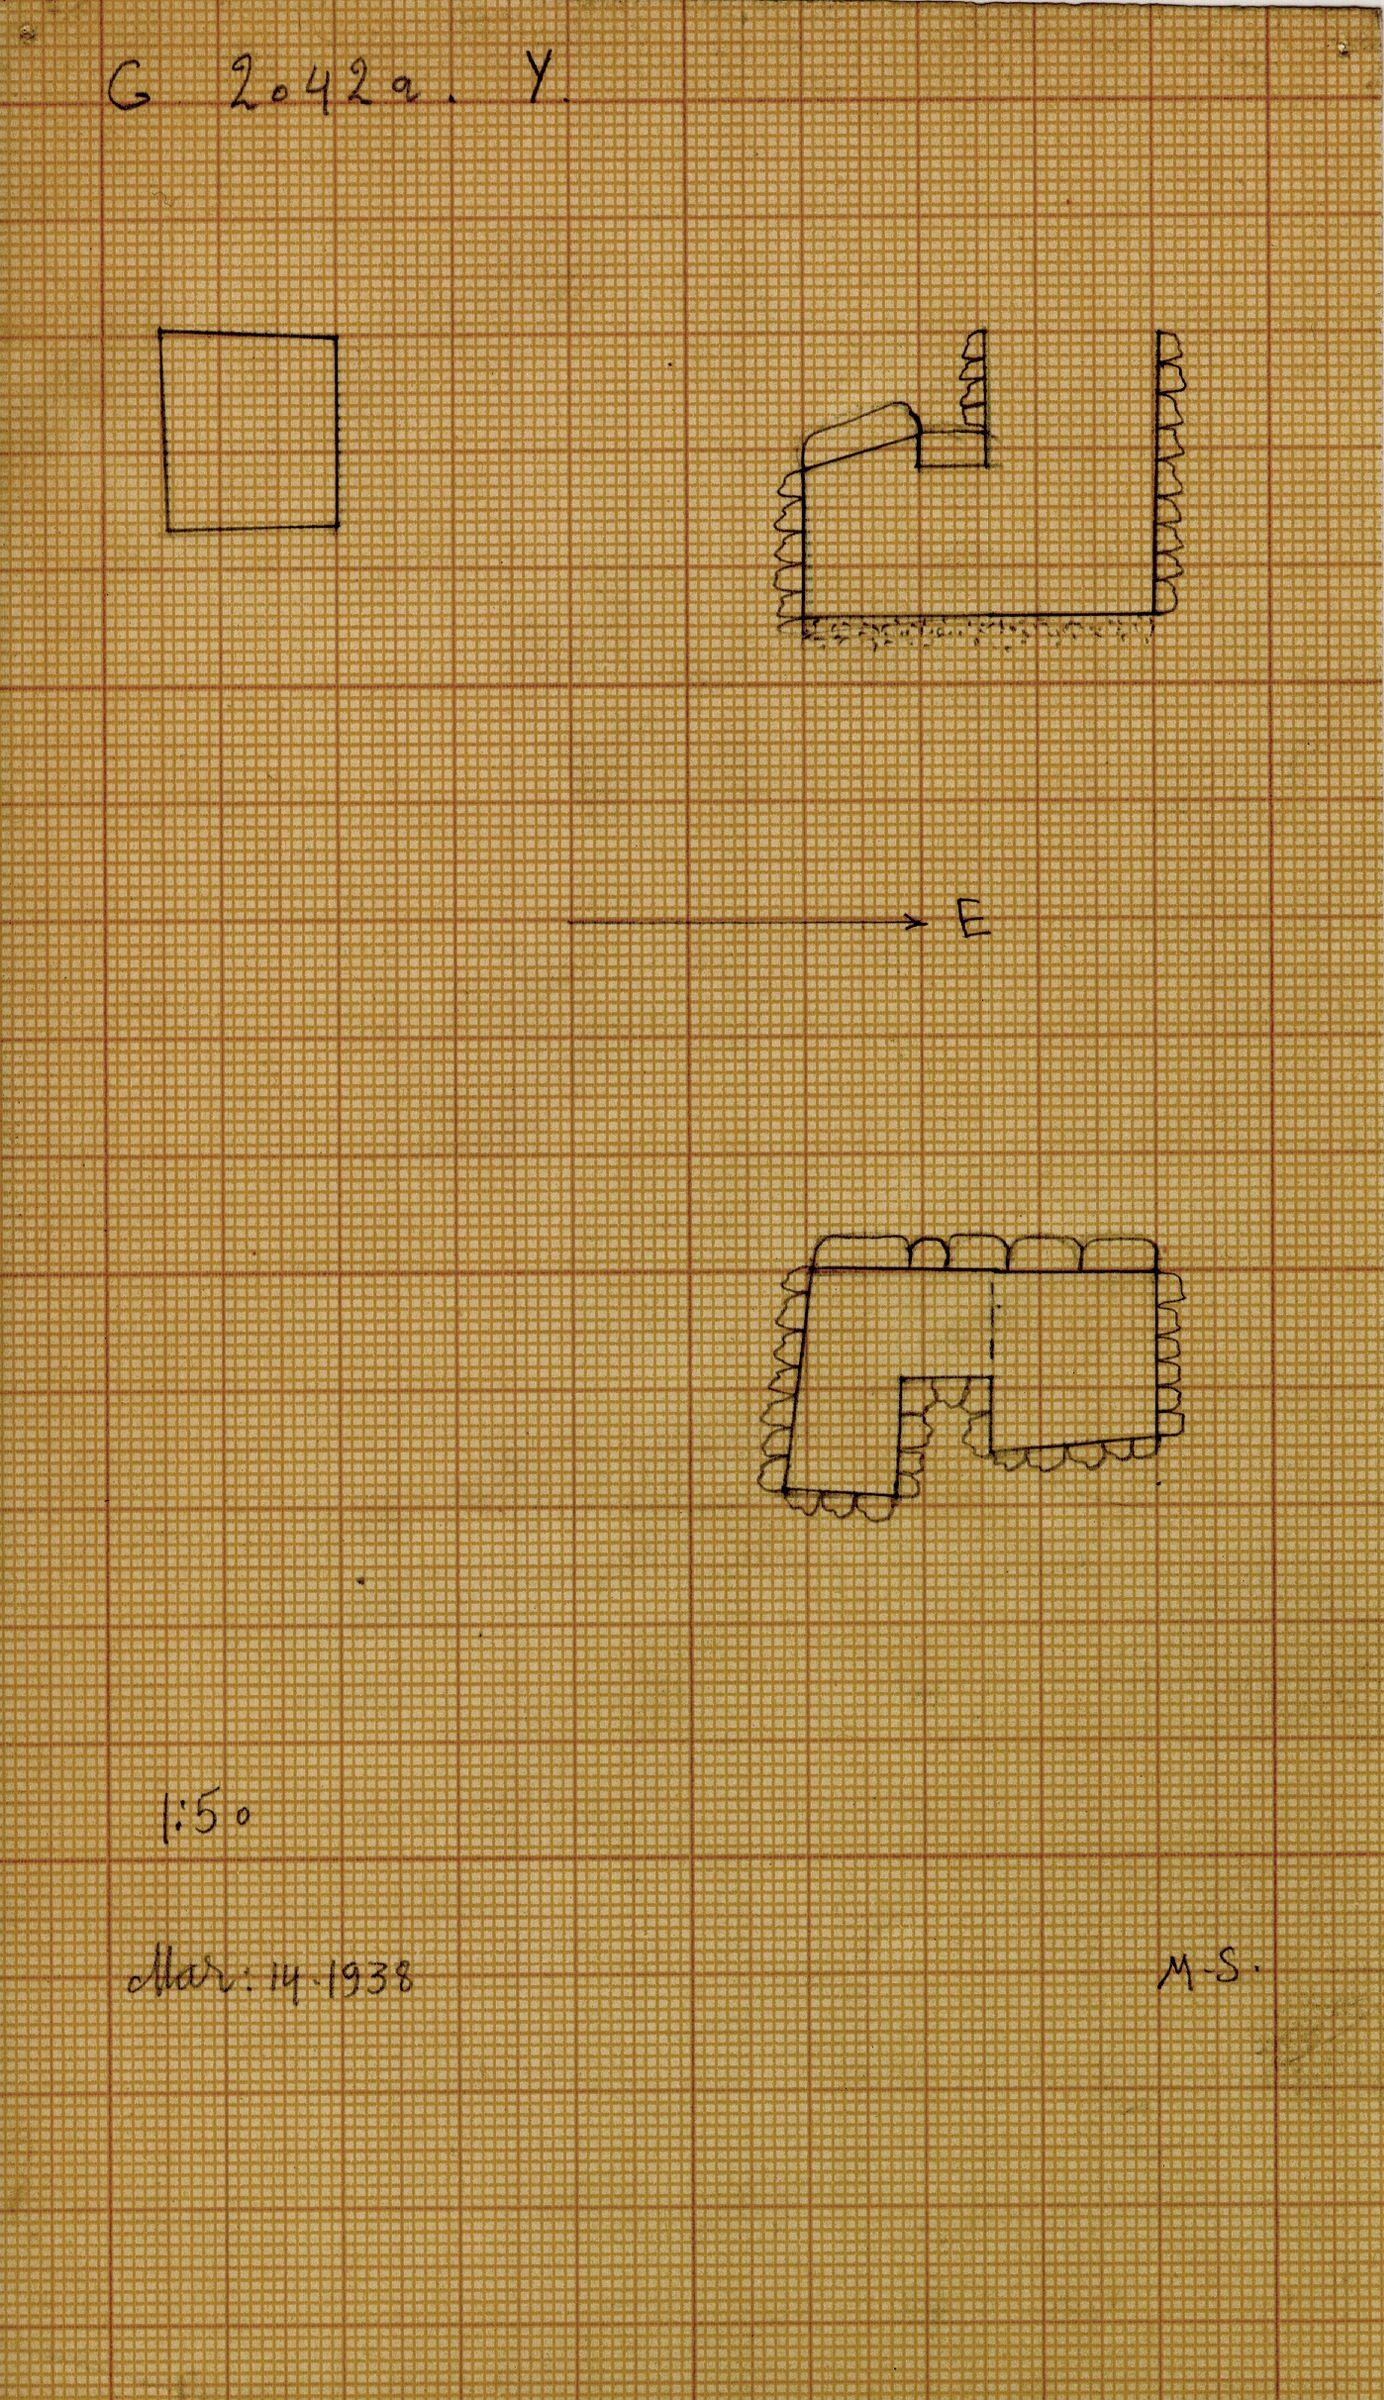 Maps and plans: G 2042a, Shaft Y